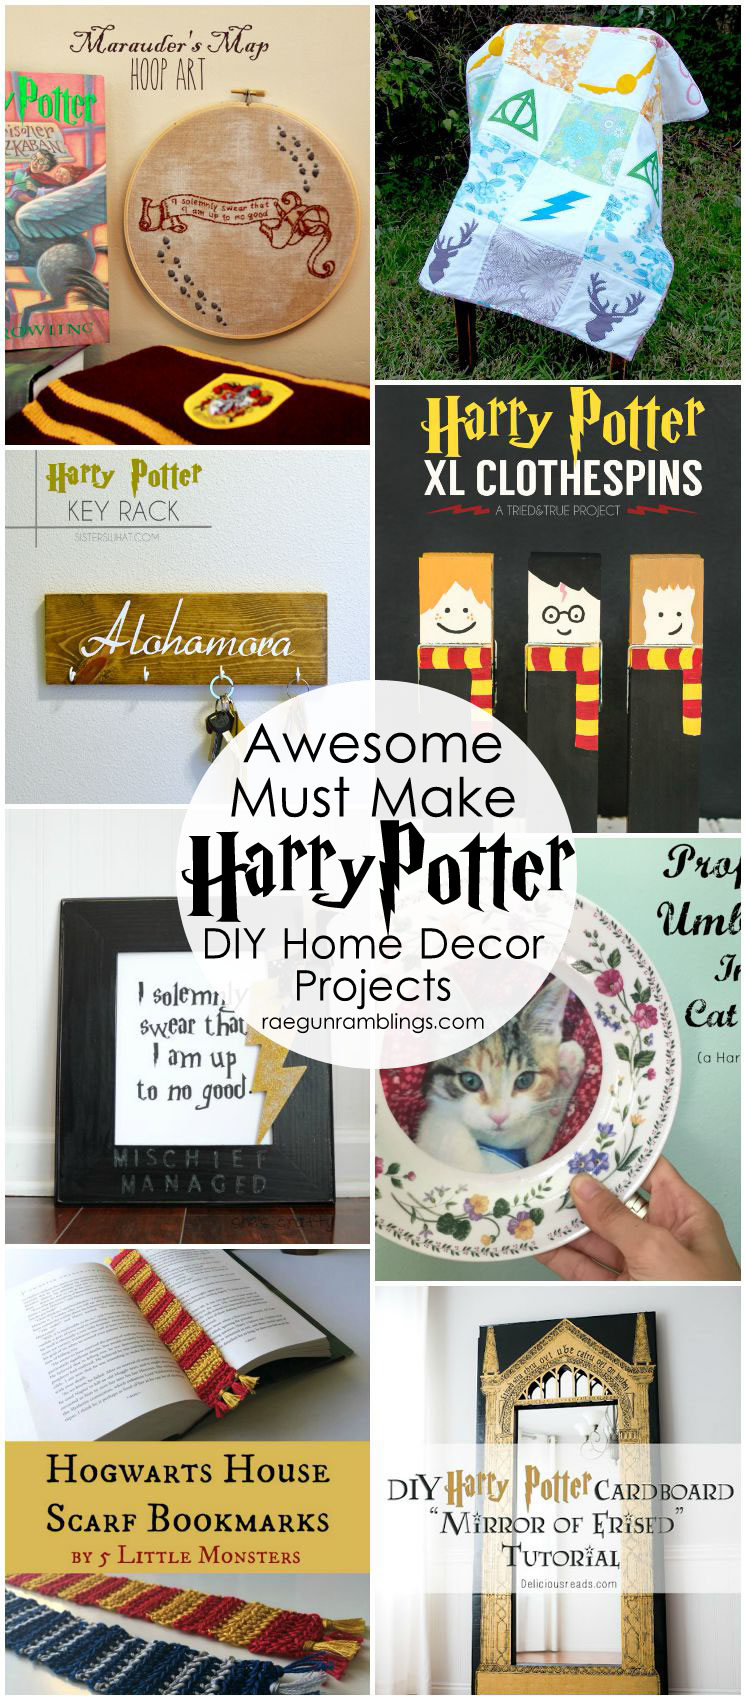 Harry Potter Home Decor Crafts